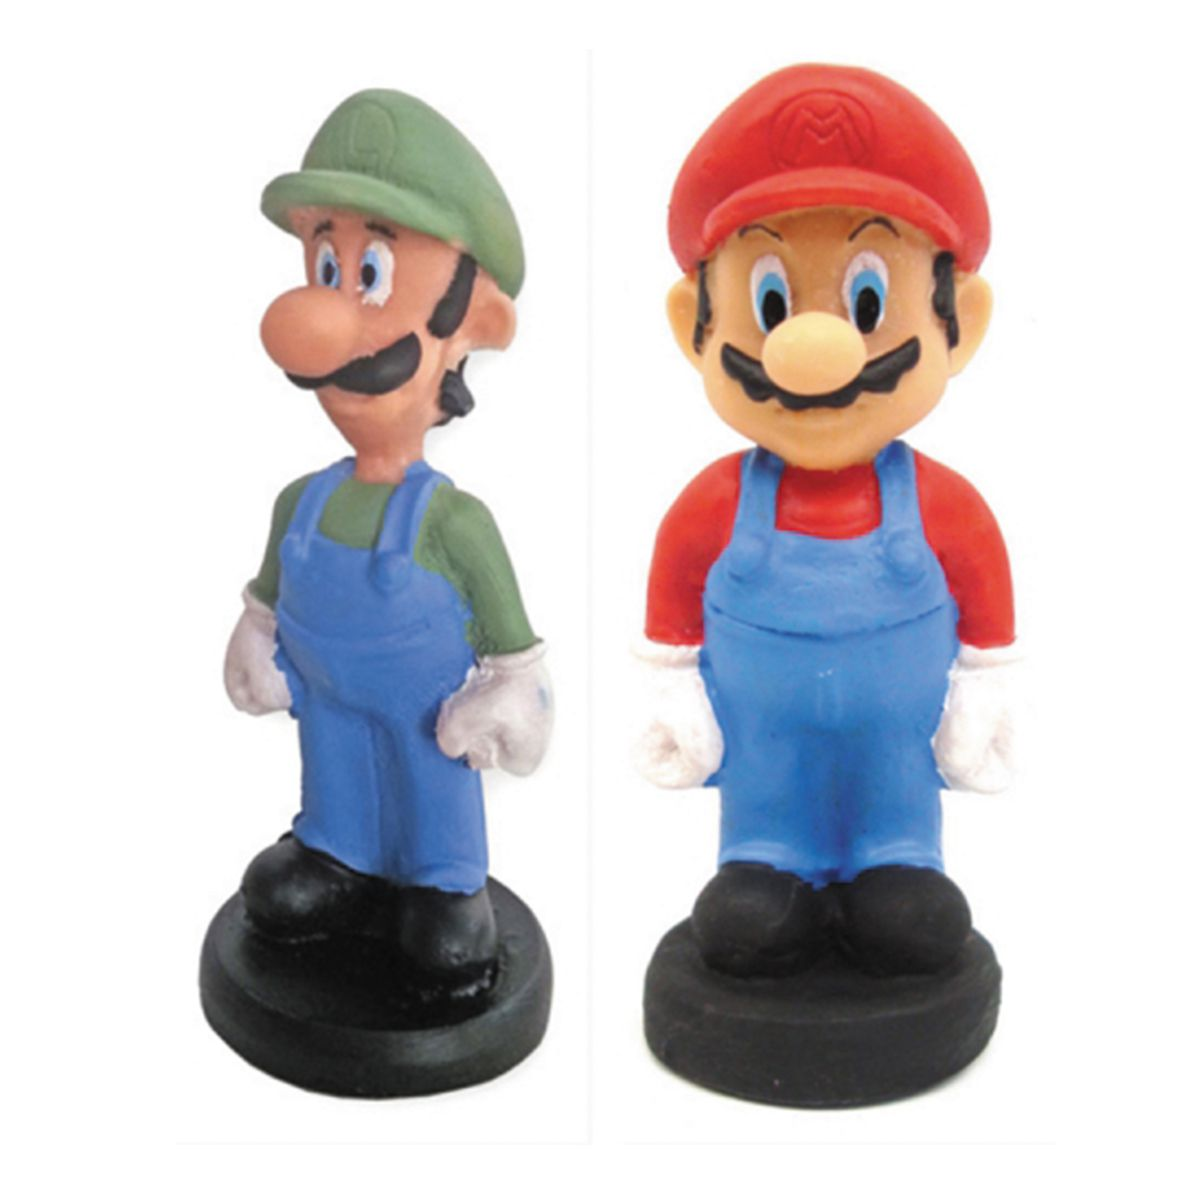 Kit Colecionável  Mario Bross e Luigi